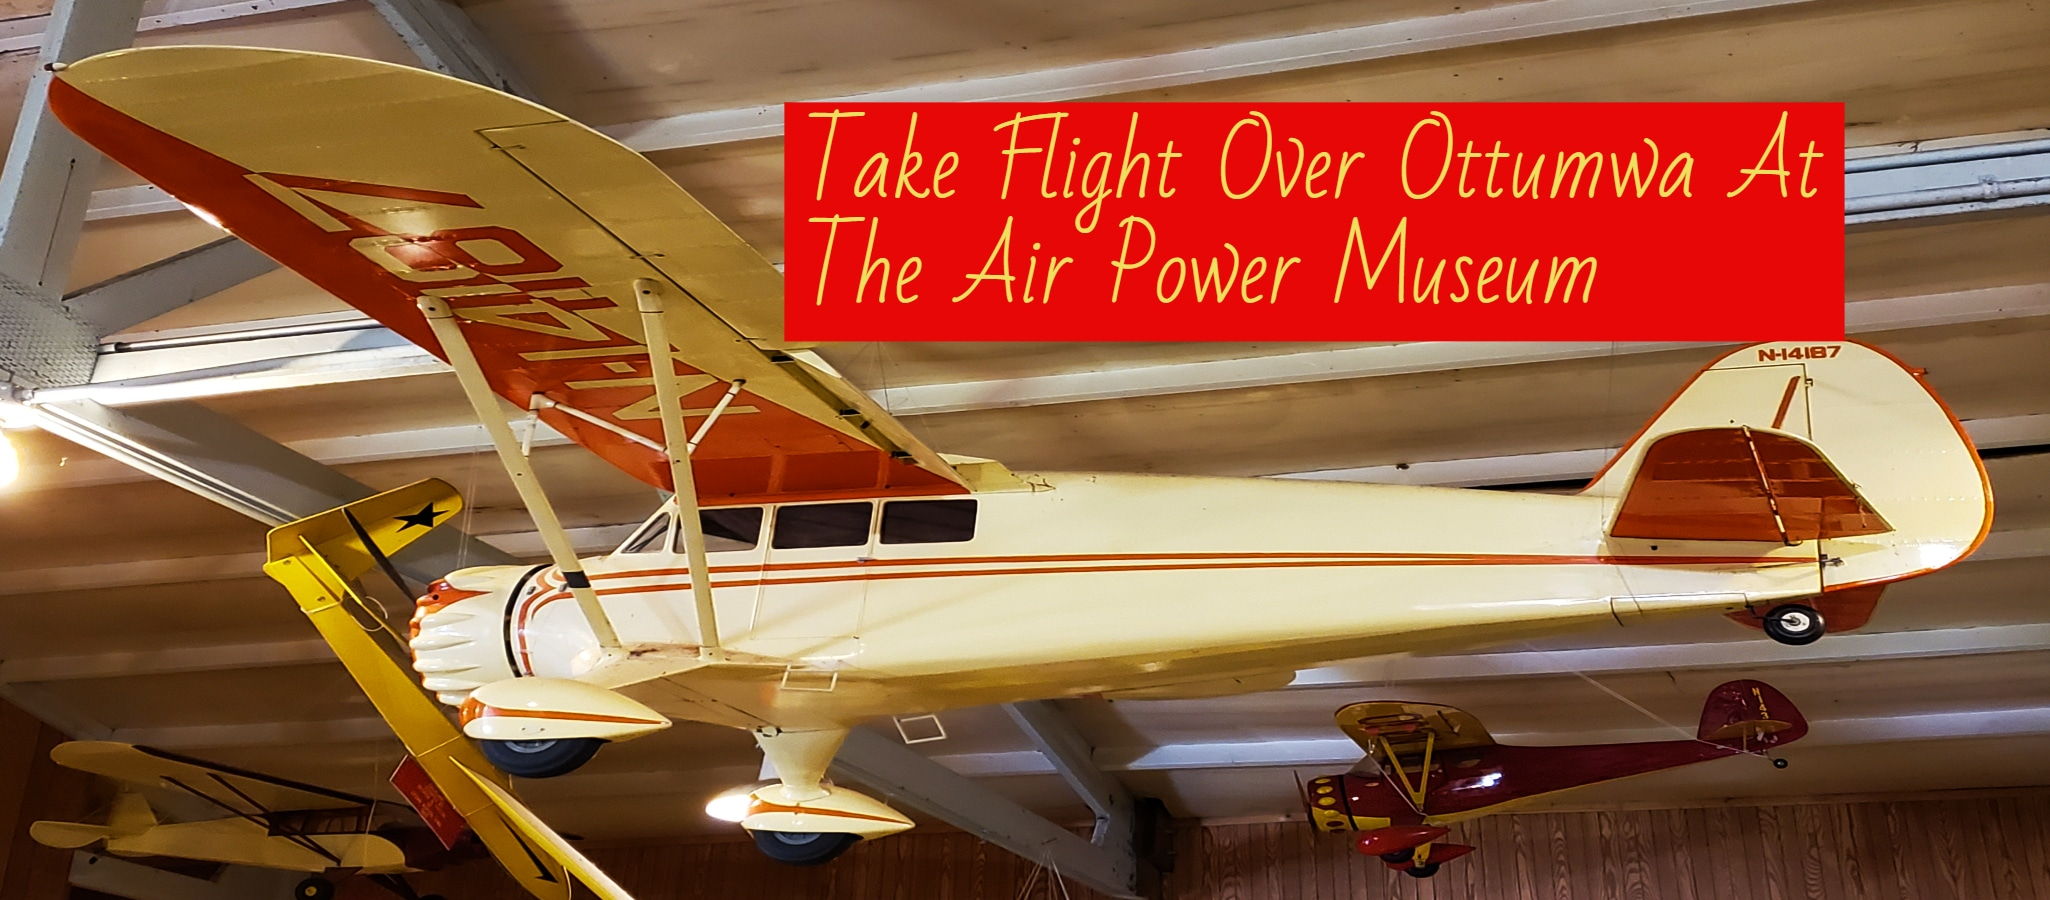 Take Flight Over Ottumwa At The Airpower Museum